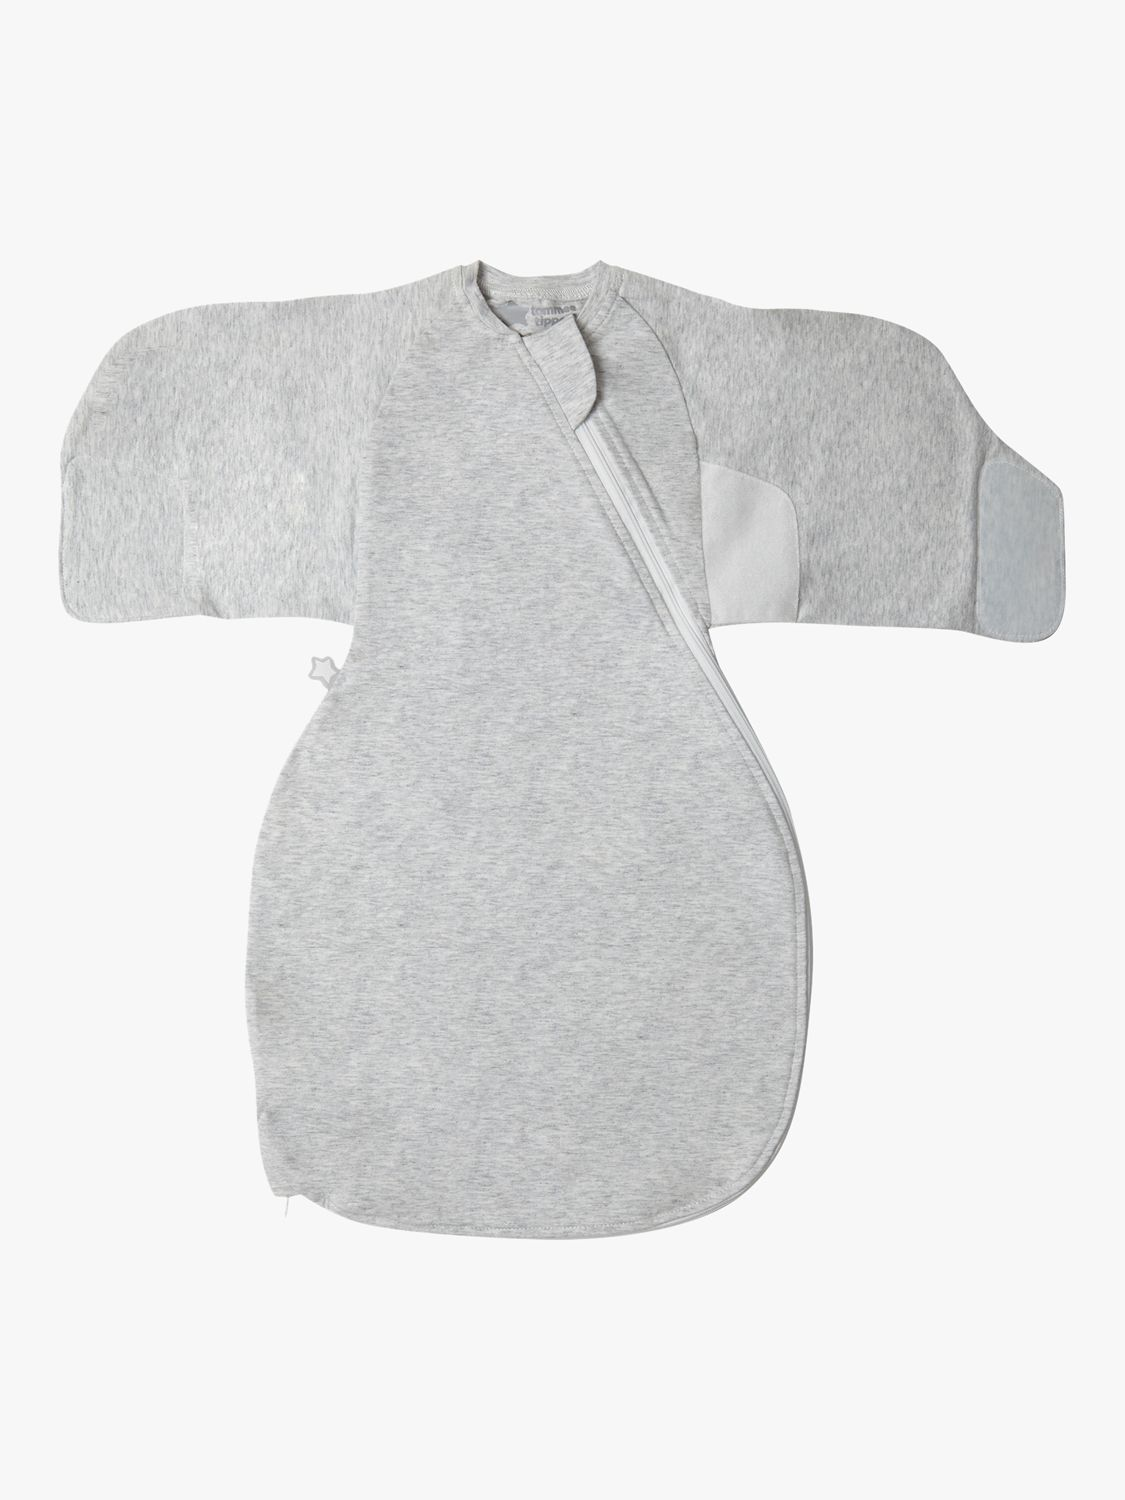 Tommee Tippee Tommee Tippee The Original Grobag Newborn Swaddle Wrap, 0-3 Months, Grey Marl